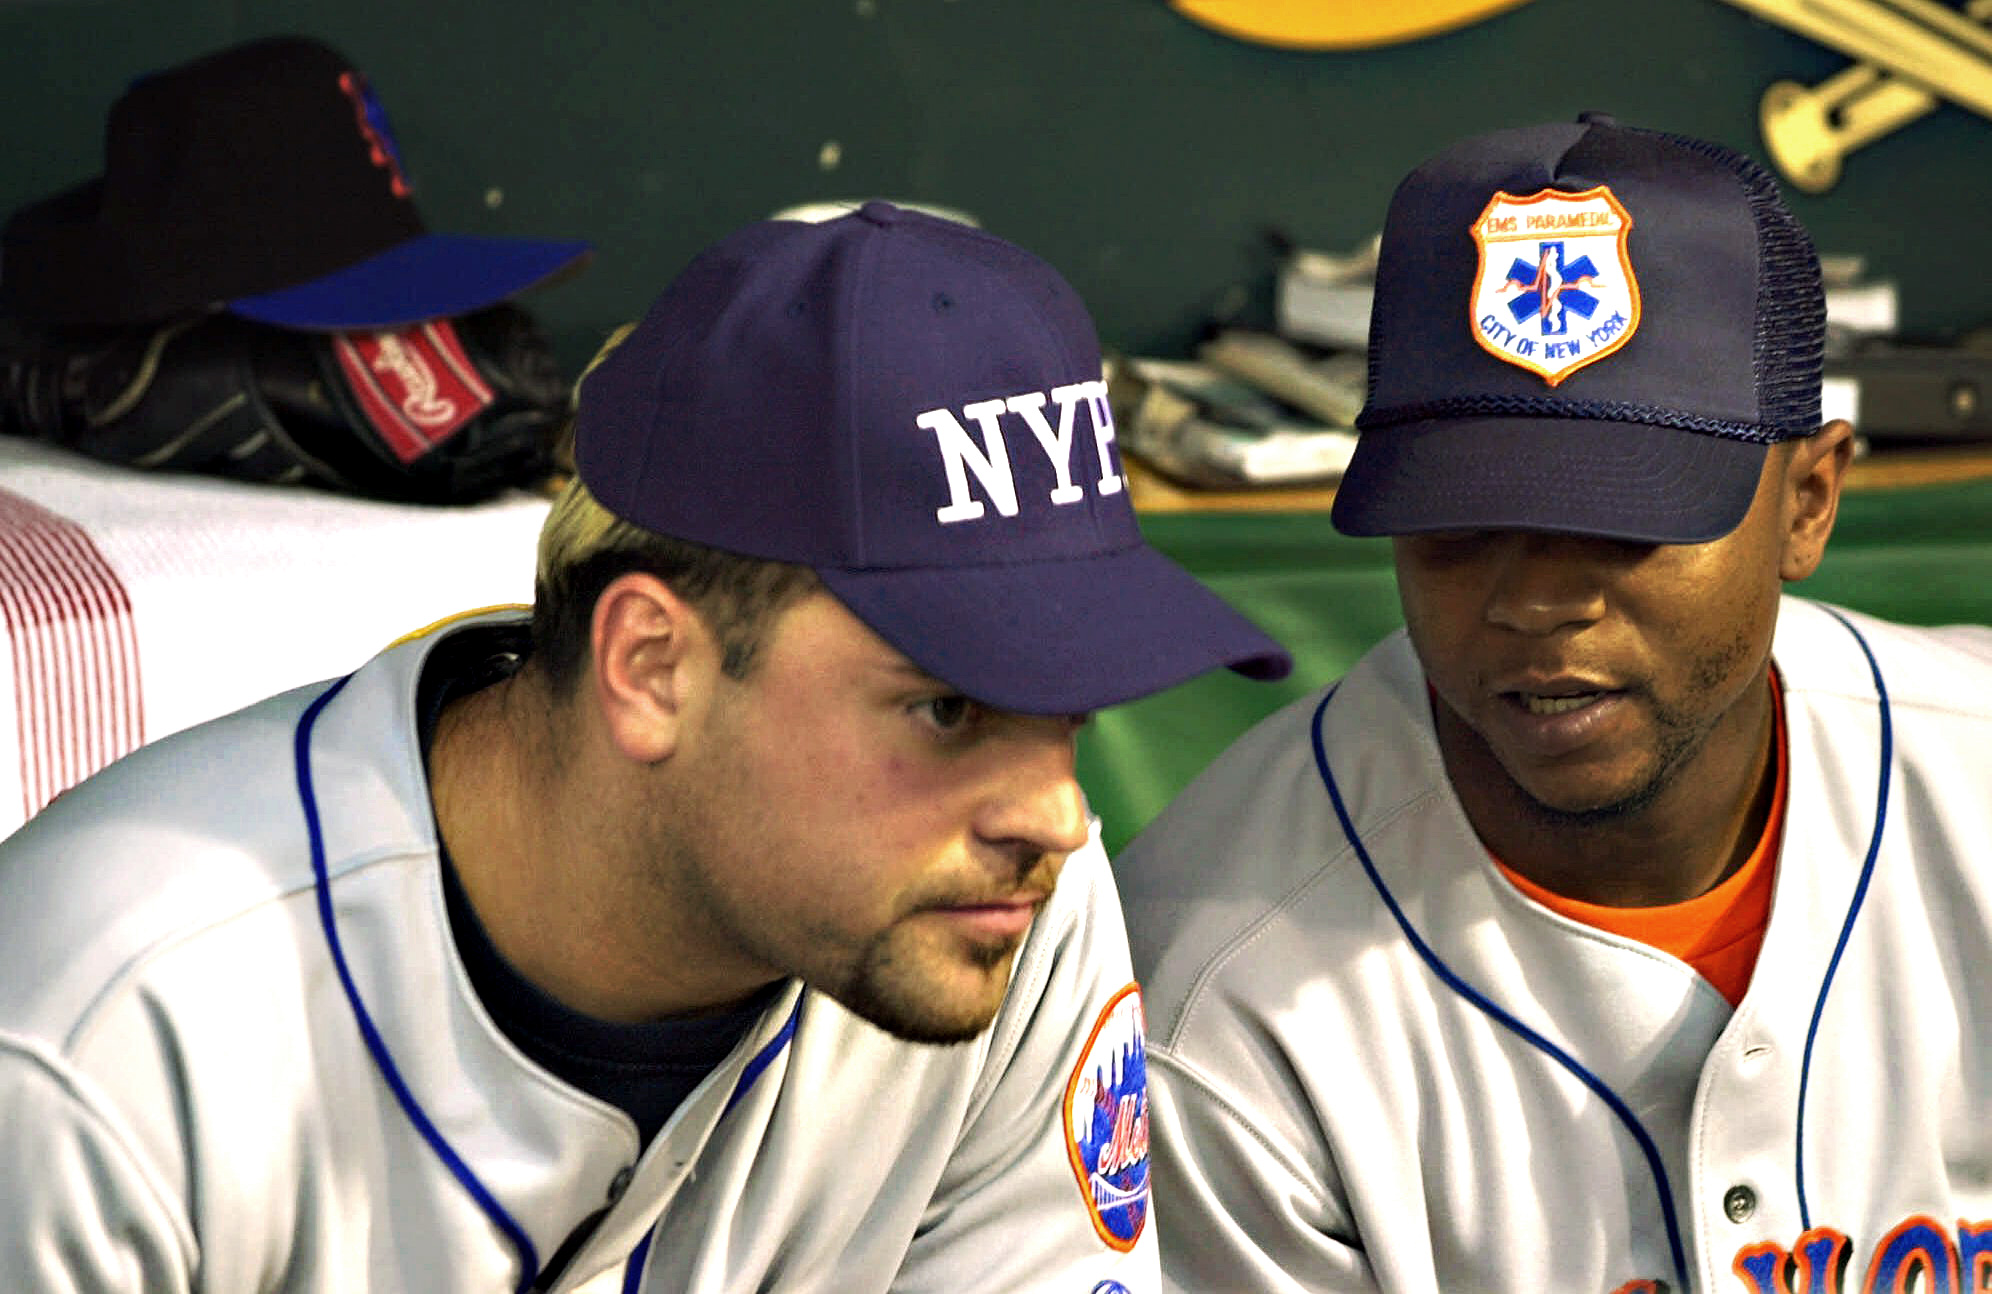 Mike Piazza and Desi Relaford